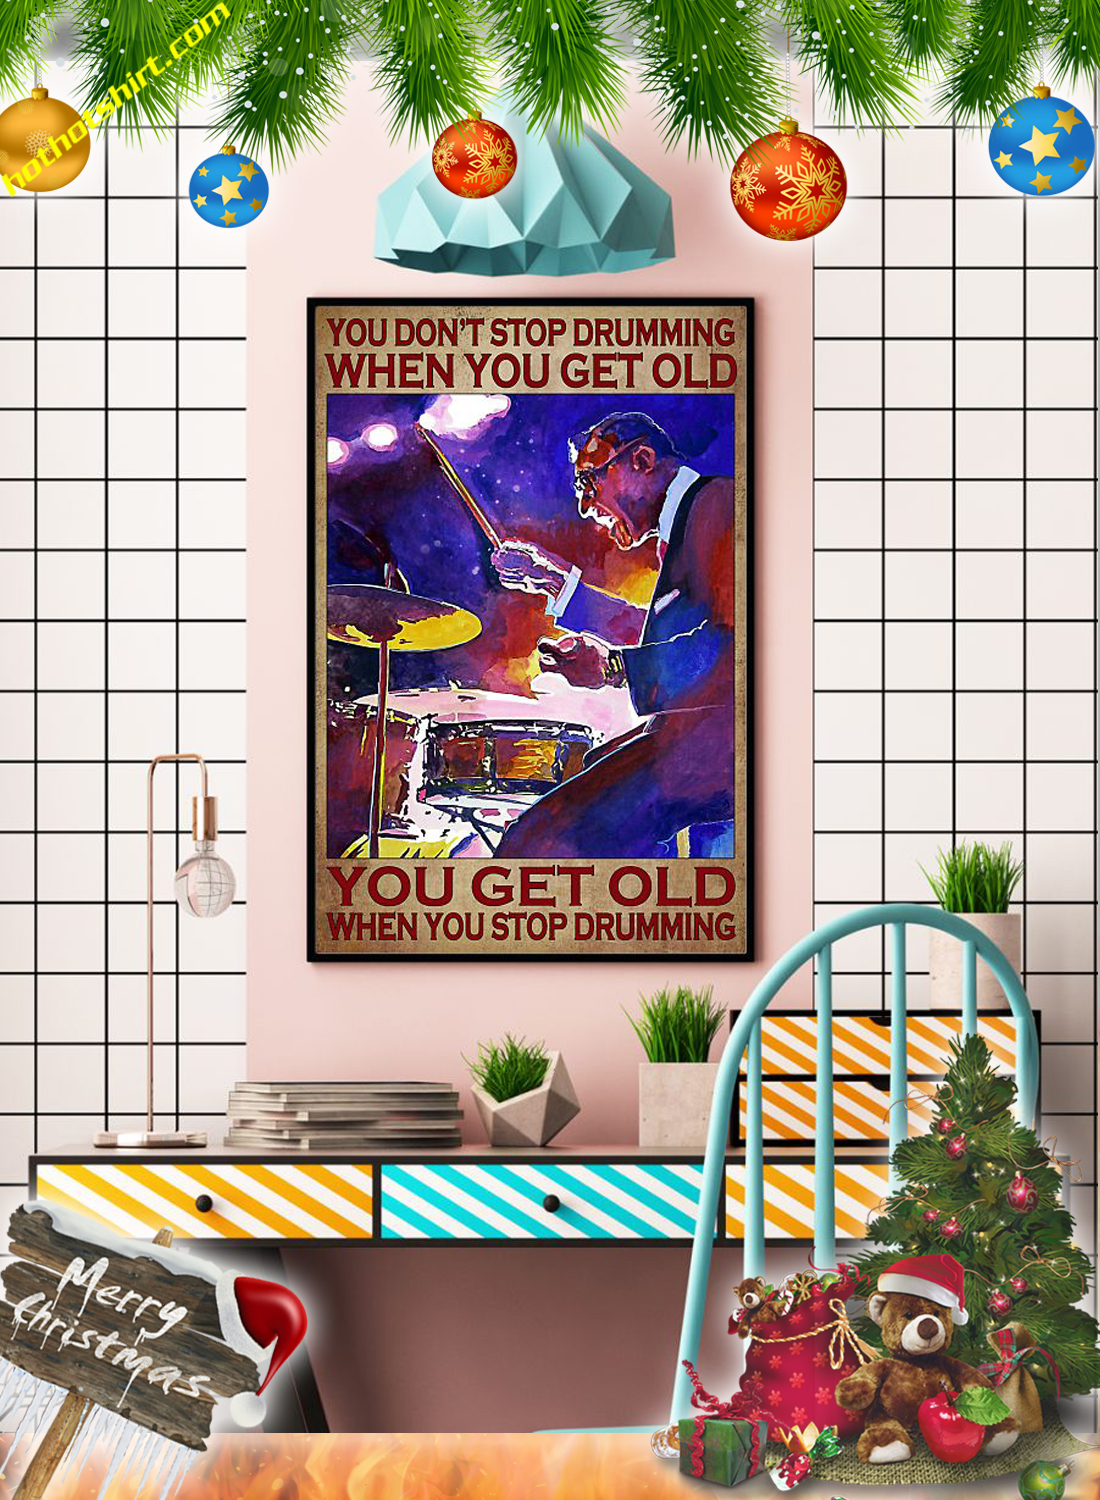 You don't stop drumming when you get old you get old when you stop drumming poster 3